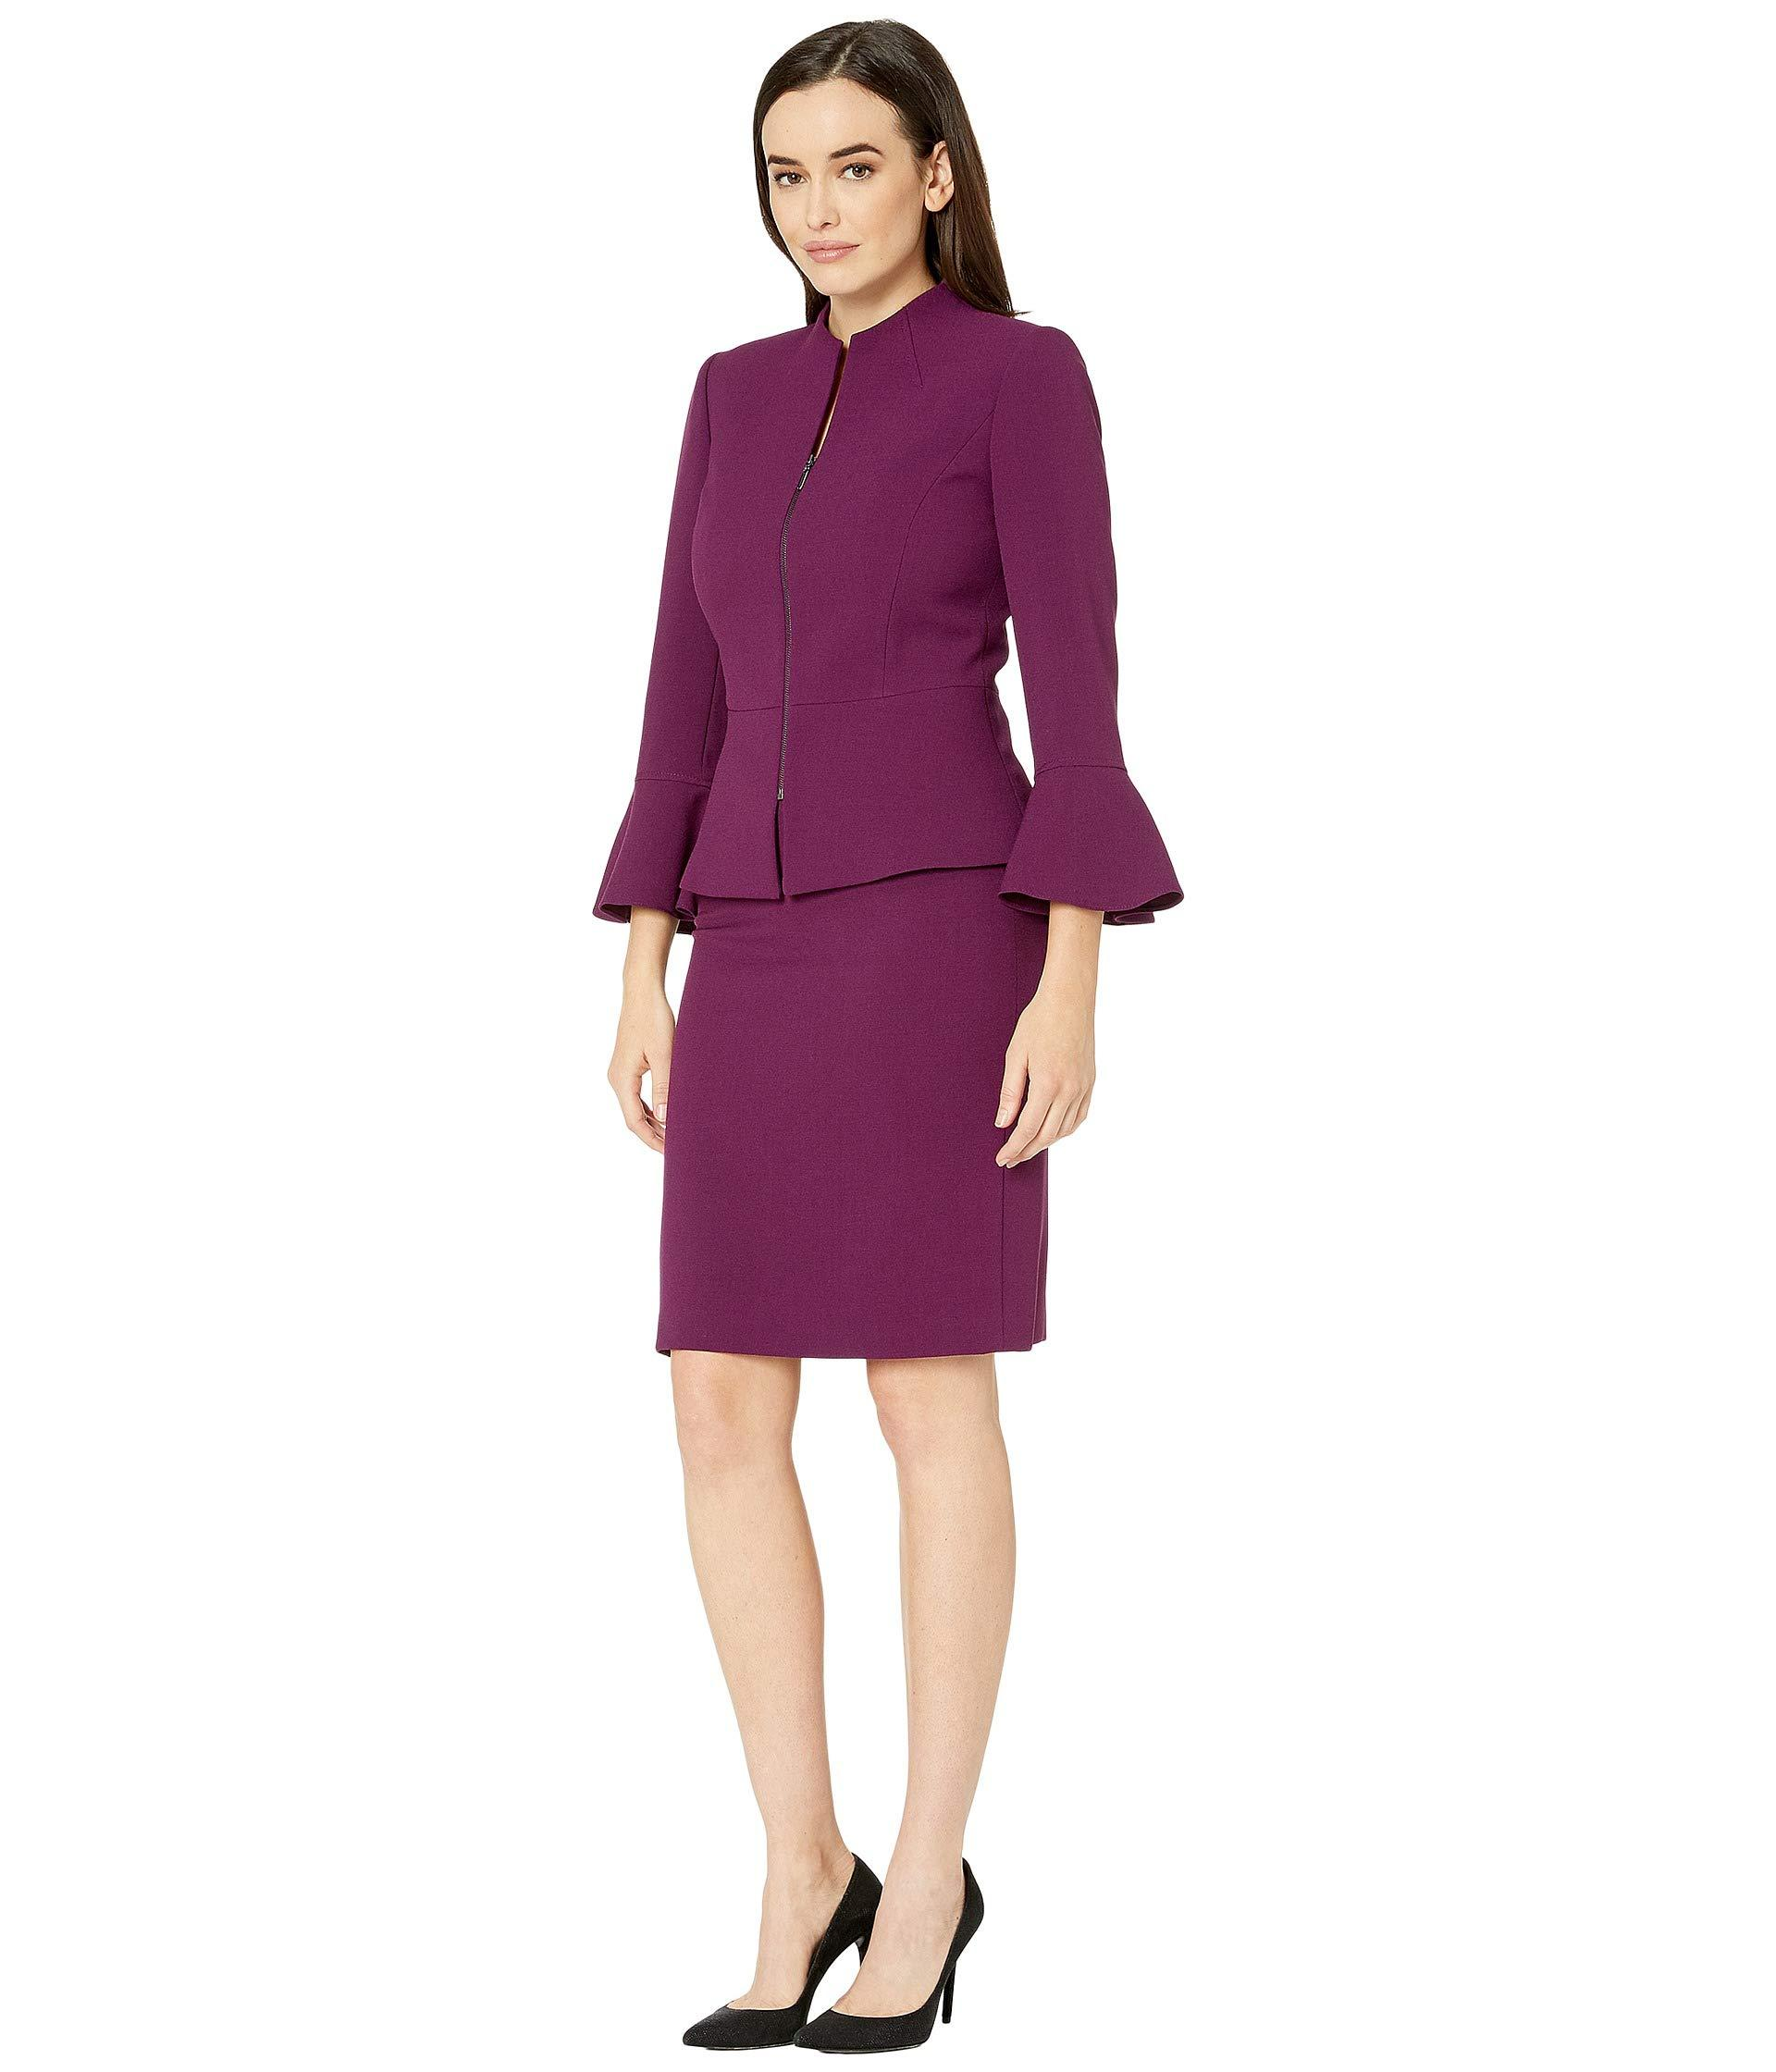 71046edc6bff Lyst - Tahari Skirt Suit With Collarless Jacket in Purple